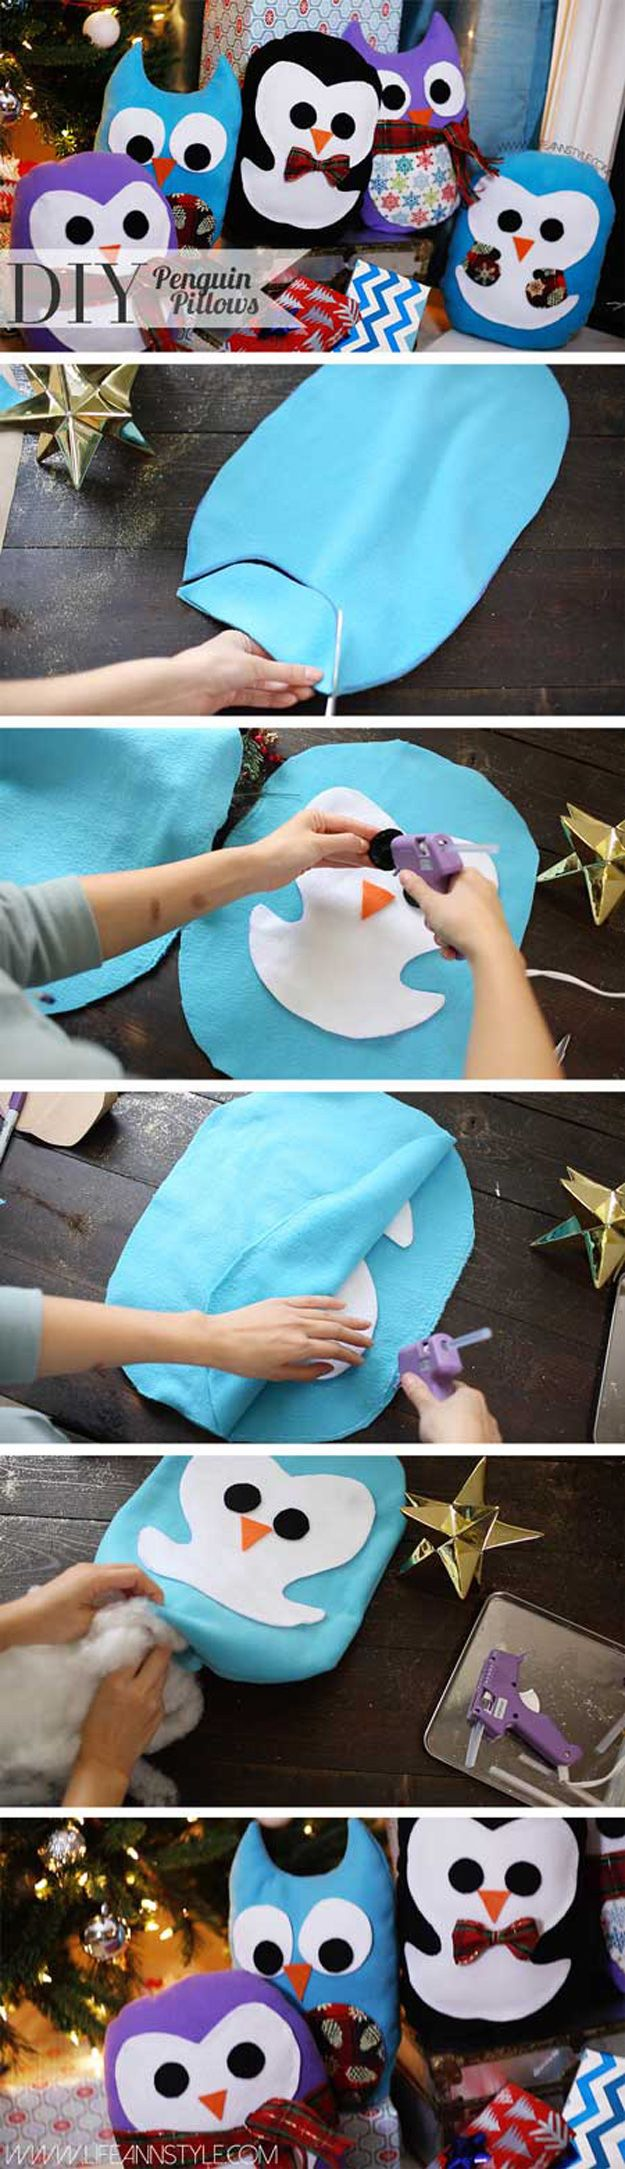 DIY Penguin Pillows Pictures, Photos, and Images for Facebook, Tumblr, Pinterest, and Twitter